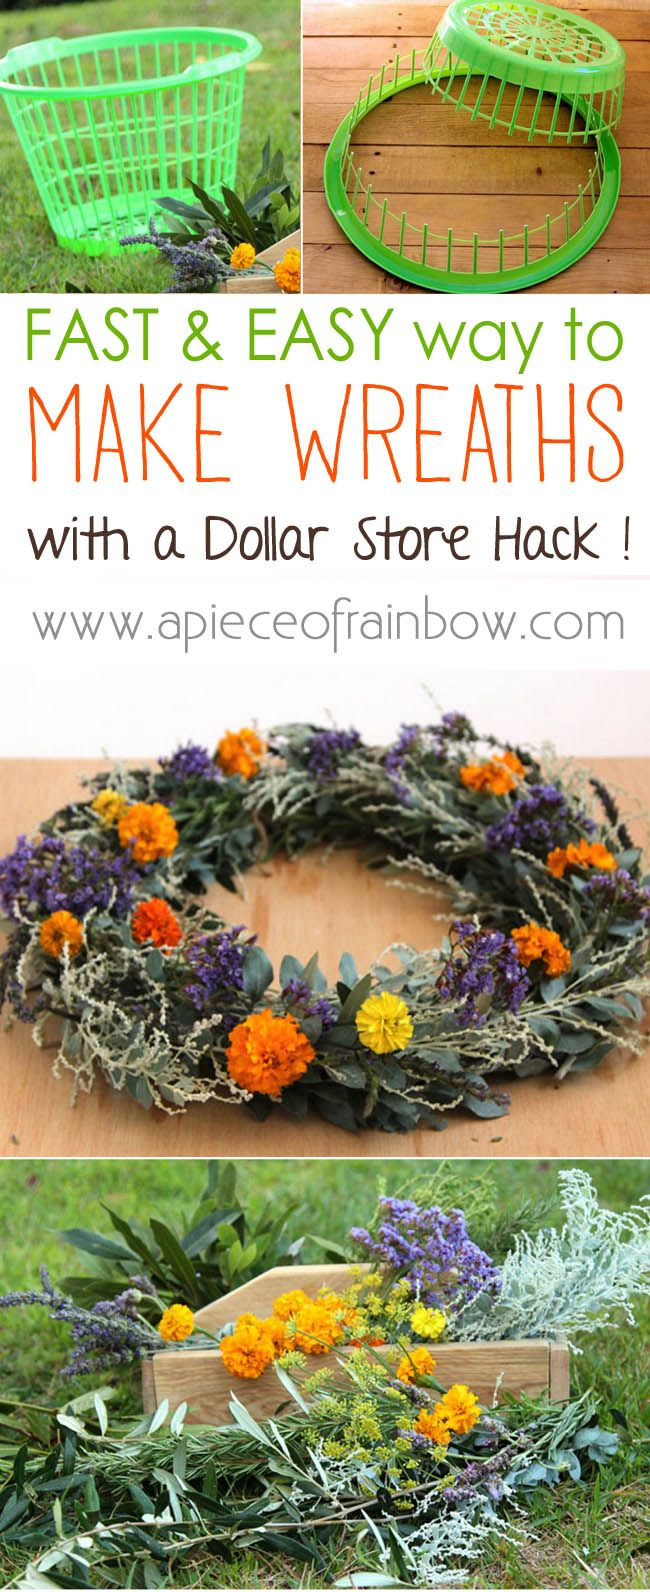 How to Make Wreath Super Fast & Easy: A Dollar Store Hack - turn a laundry…